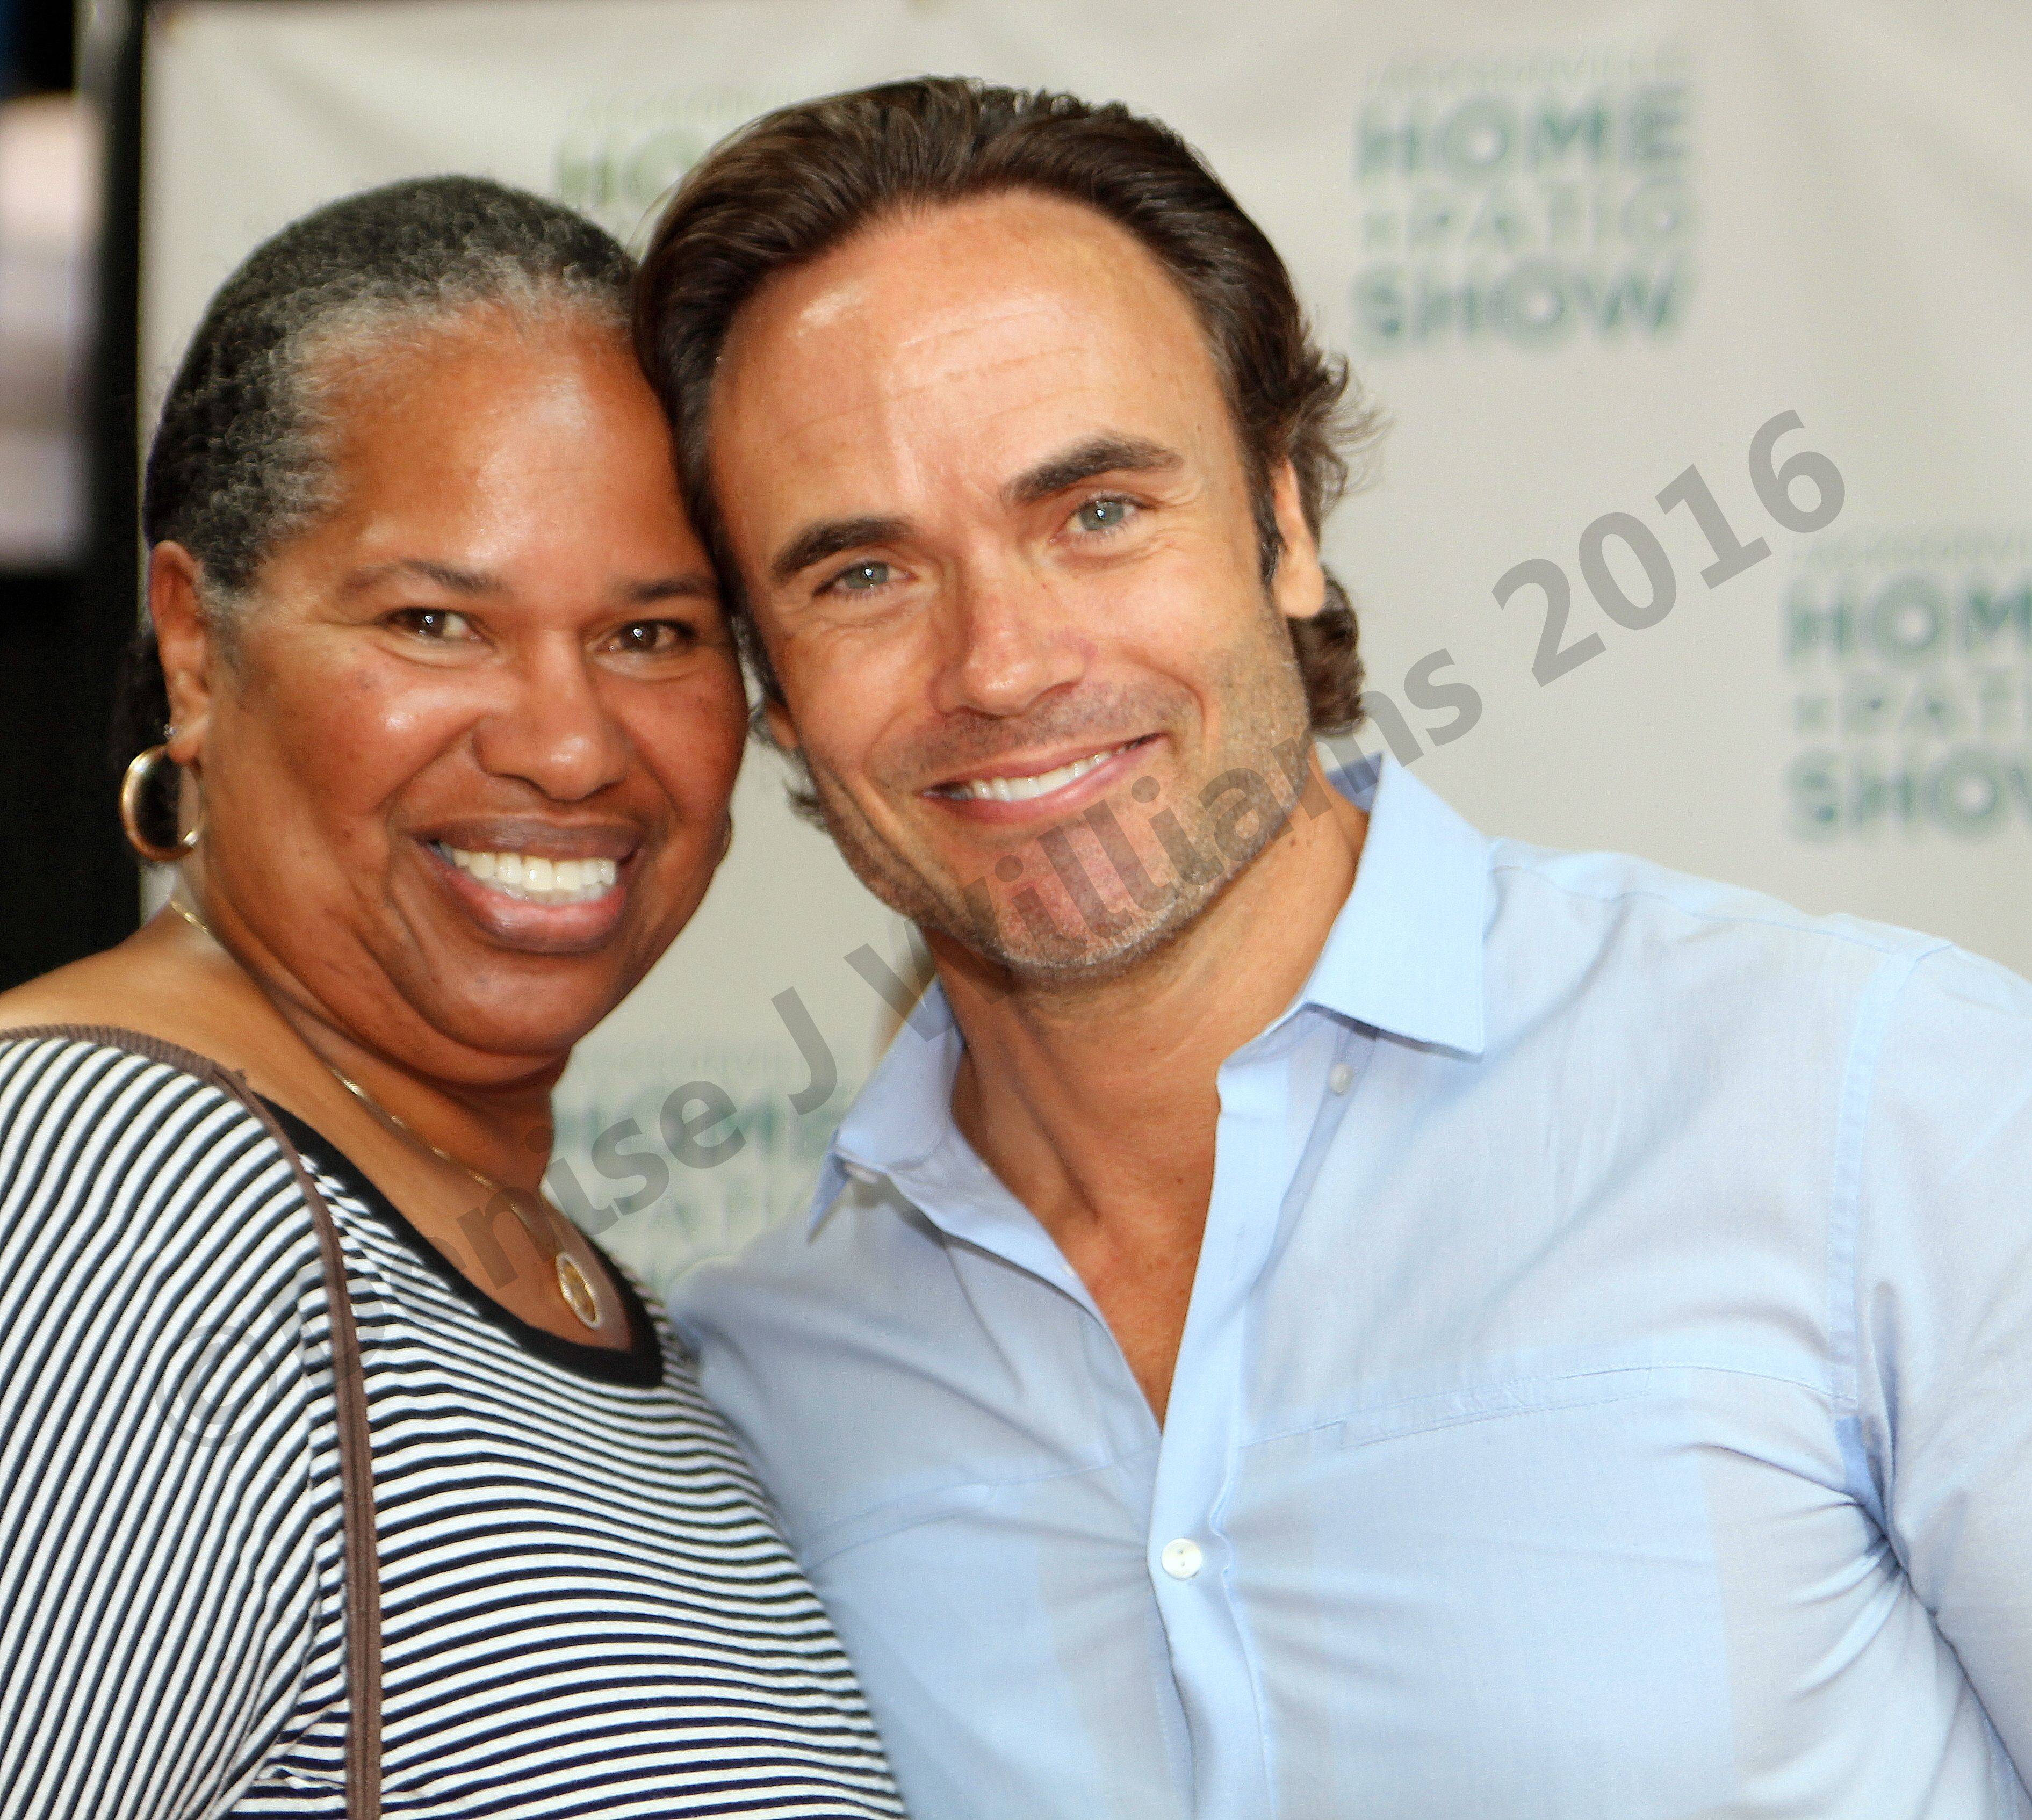 Some eye candy for the la s Caught up with MattBlashaw from